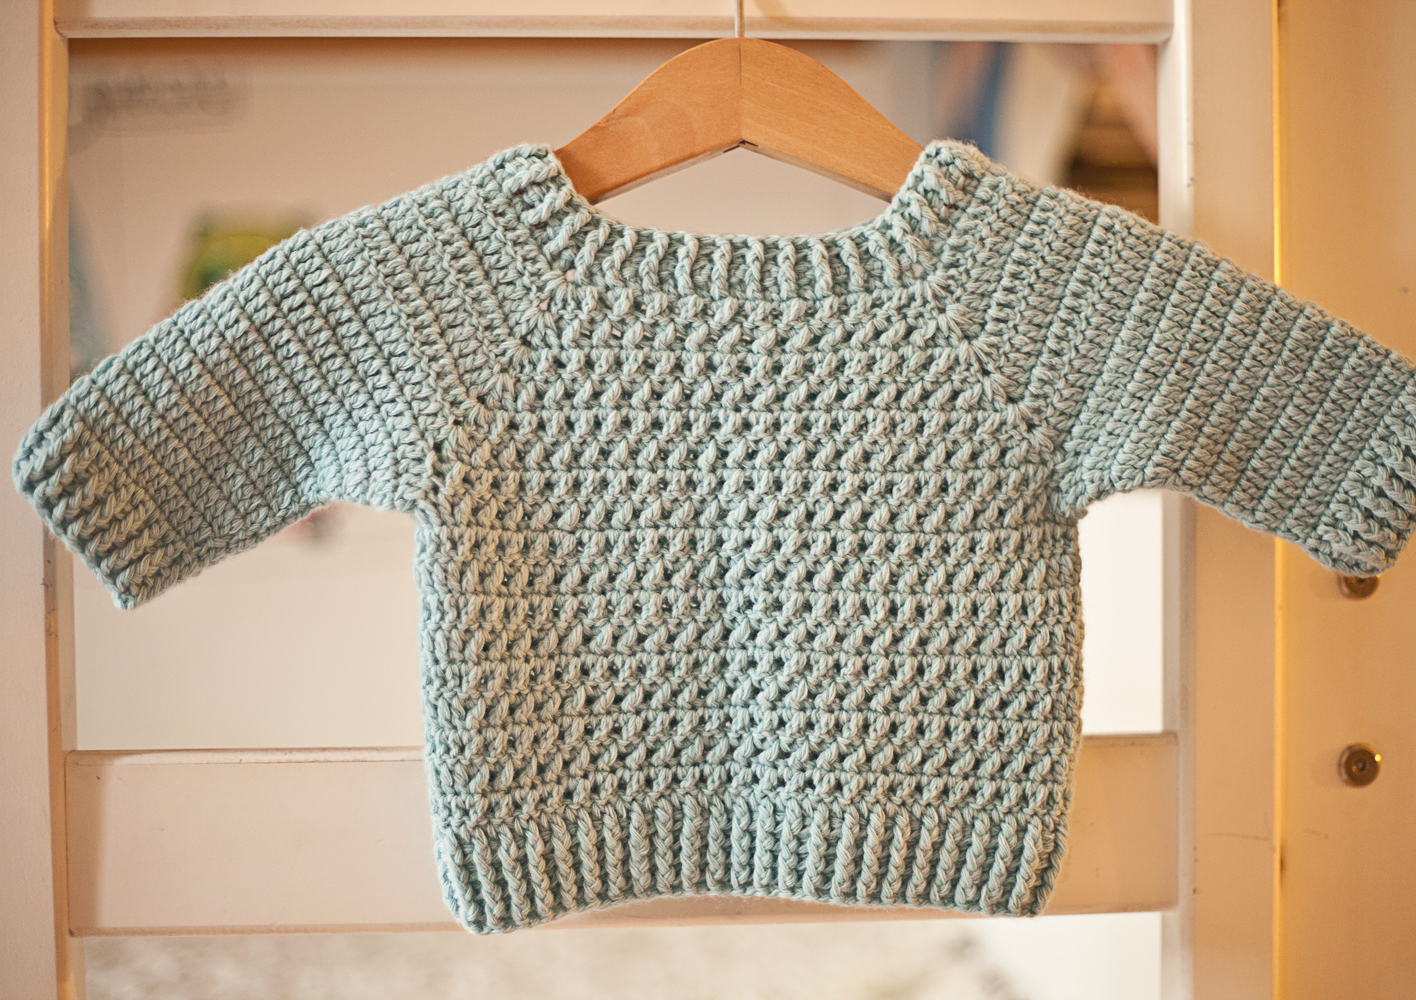 Crochet for boys? Check out our new sweater pattern!